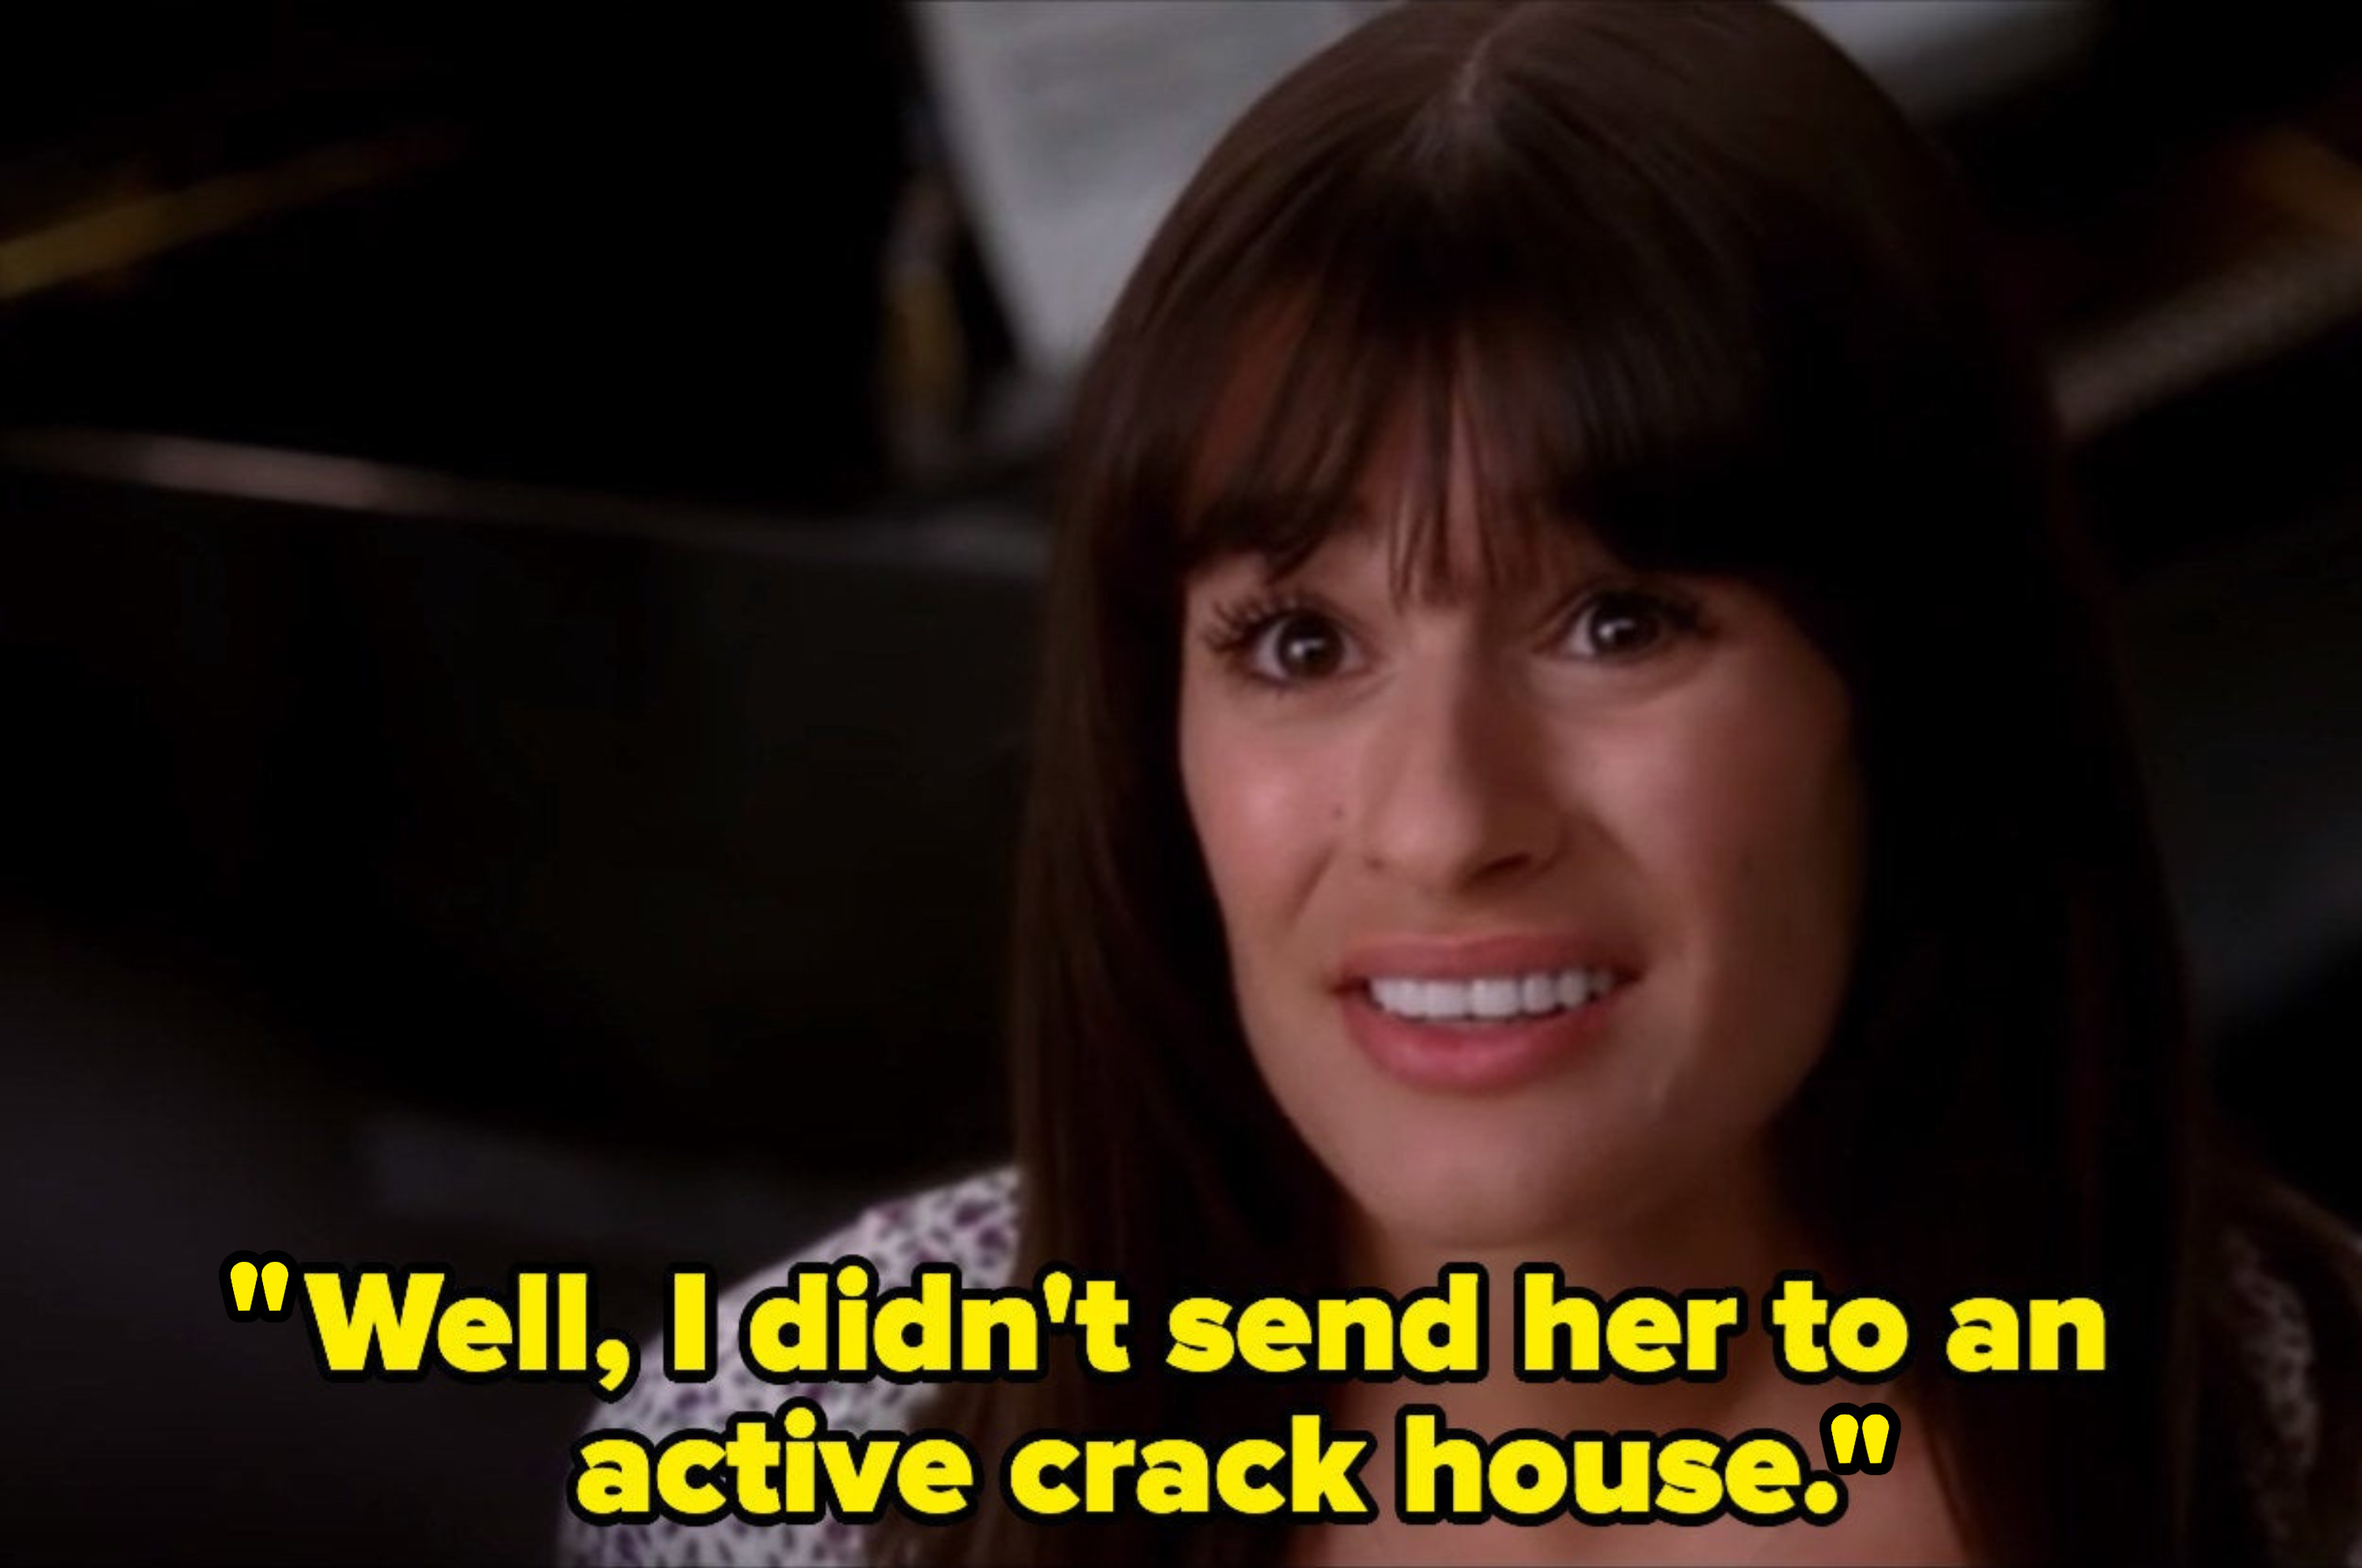 Rachel says that at least she didn't send Sunshine to an active crack house.